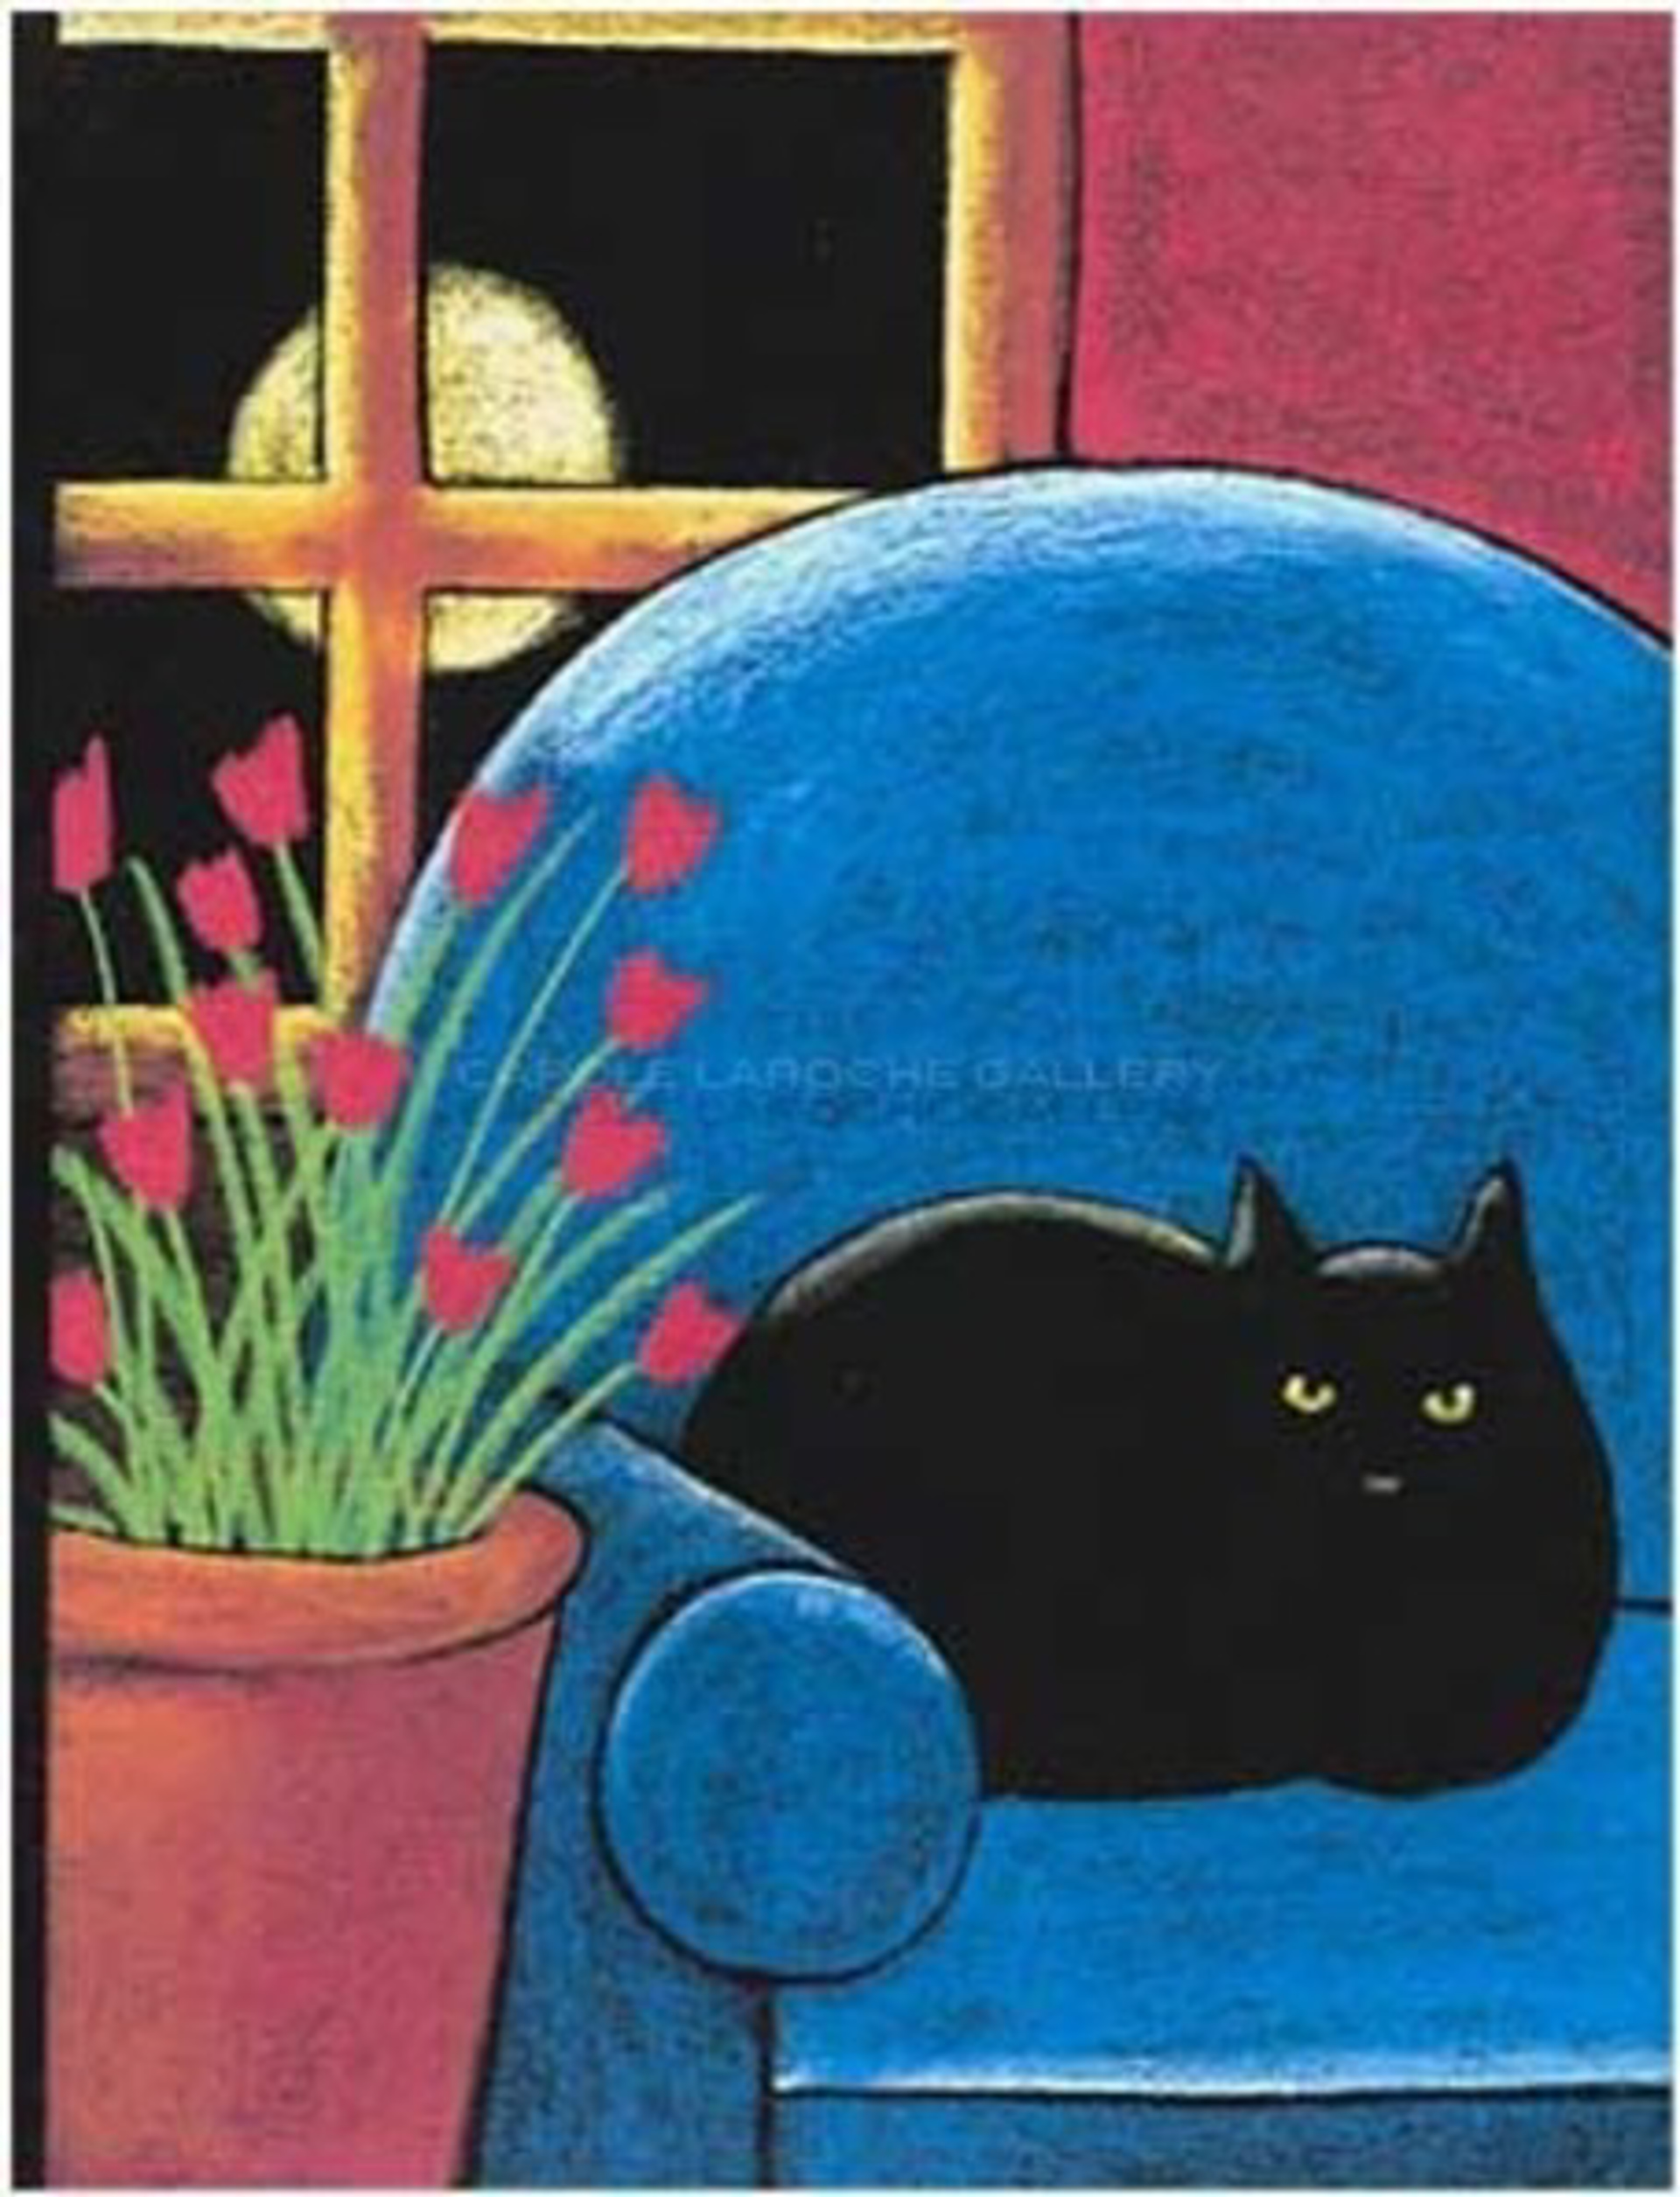 "BLACK CAT IN BLUE CHAIR - limited edition giclee on paper w/frame size of 36""x29""  by Carole LaRoche"